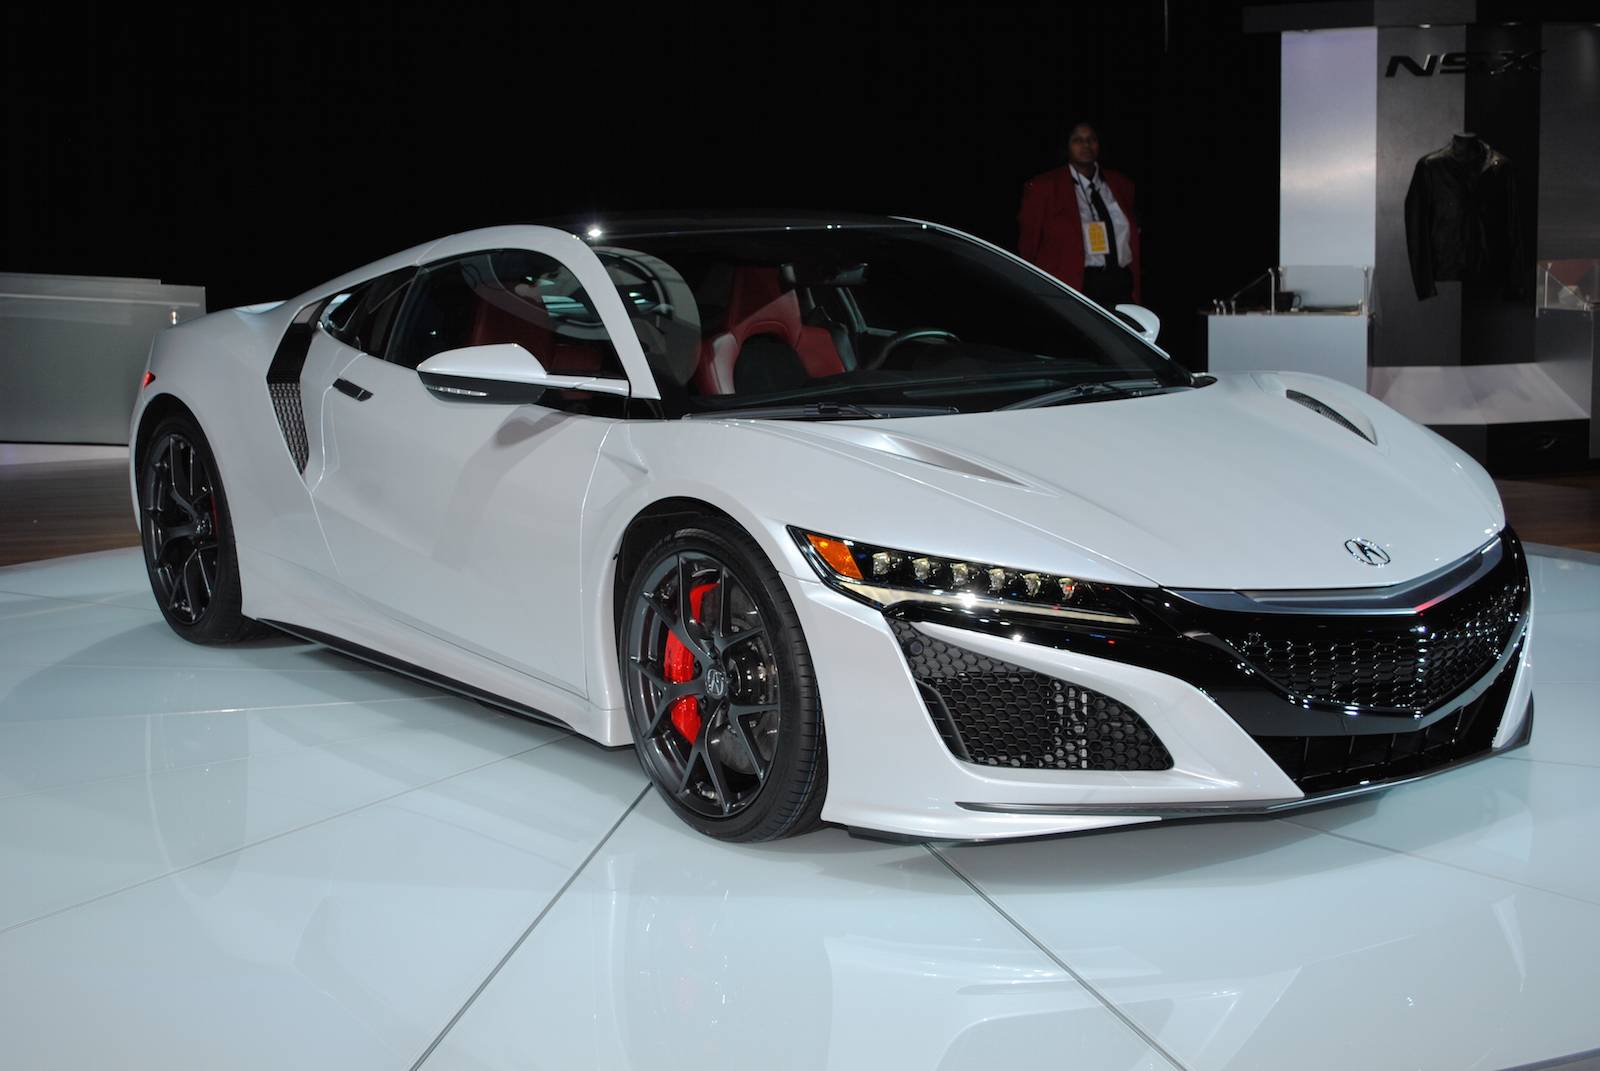 2017 Honda NSX Priced from £130,000 in the UK - GTspirit